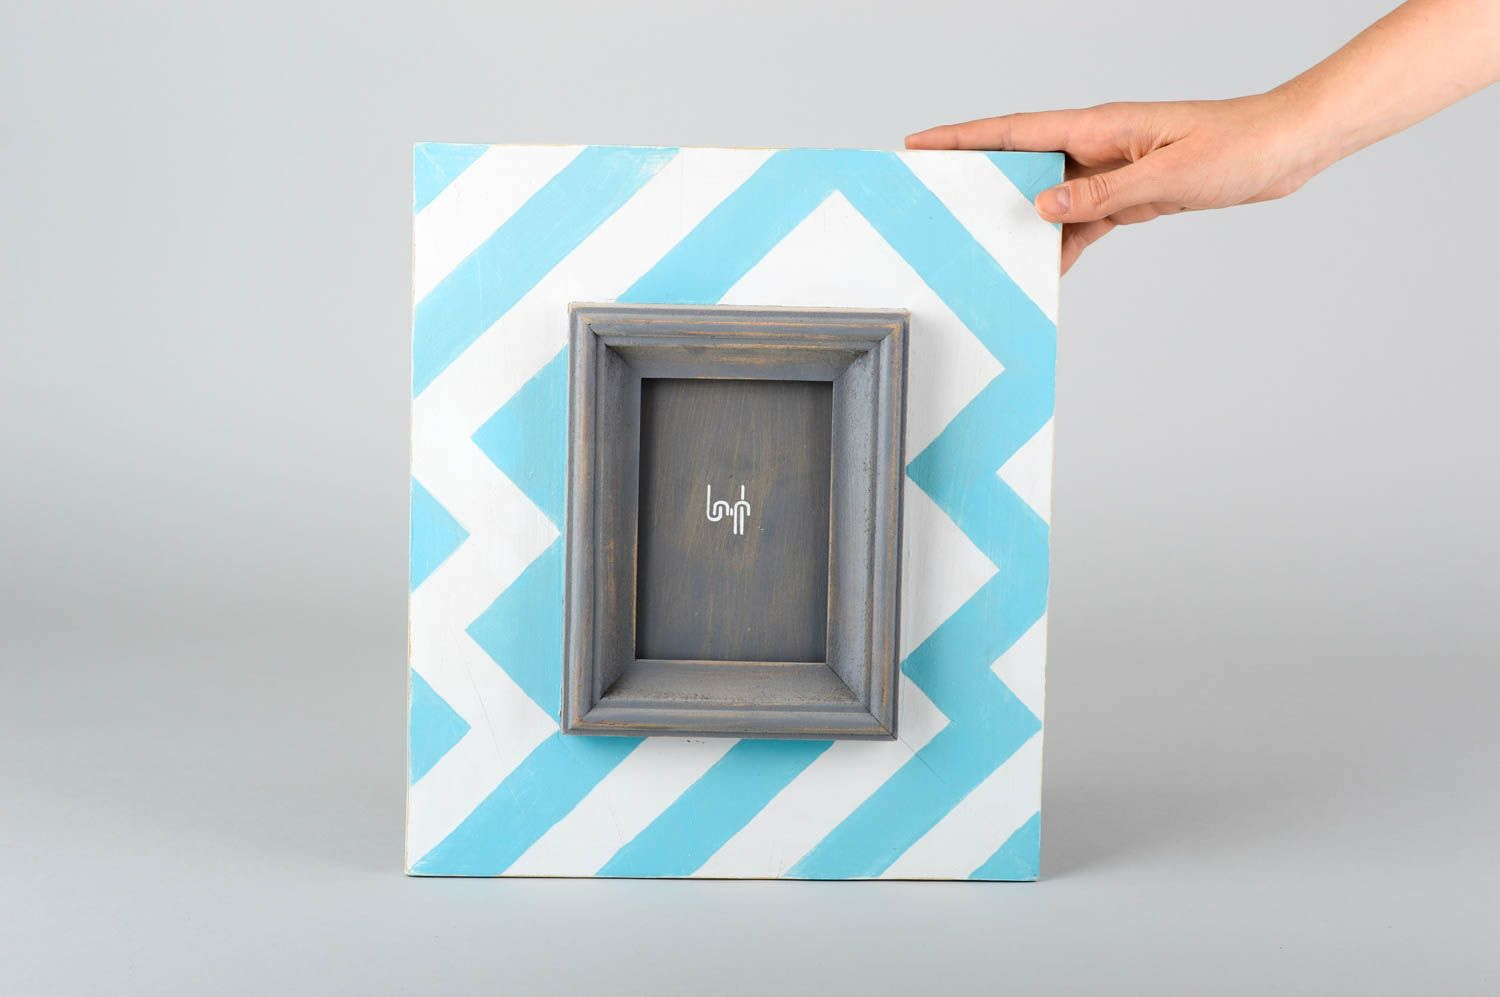 Handmade photo frame wooden frame for photo decorative use only wall decor photo 2